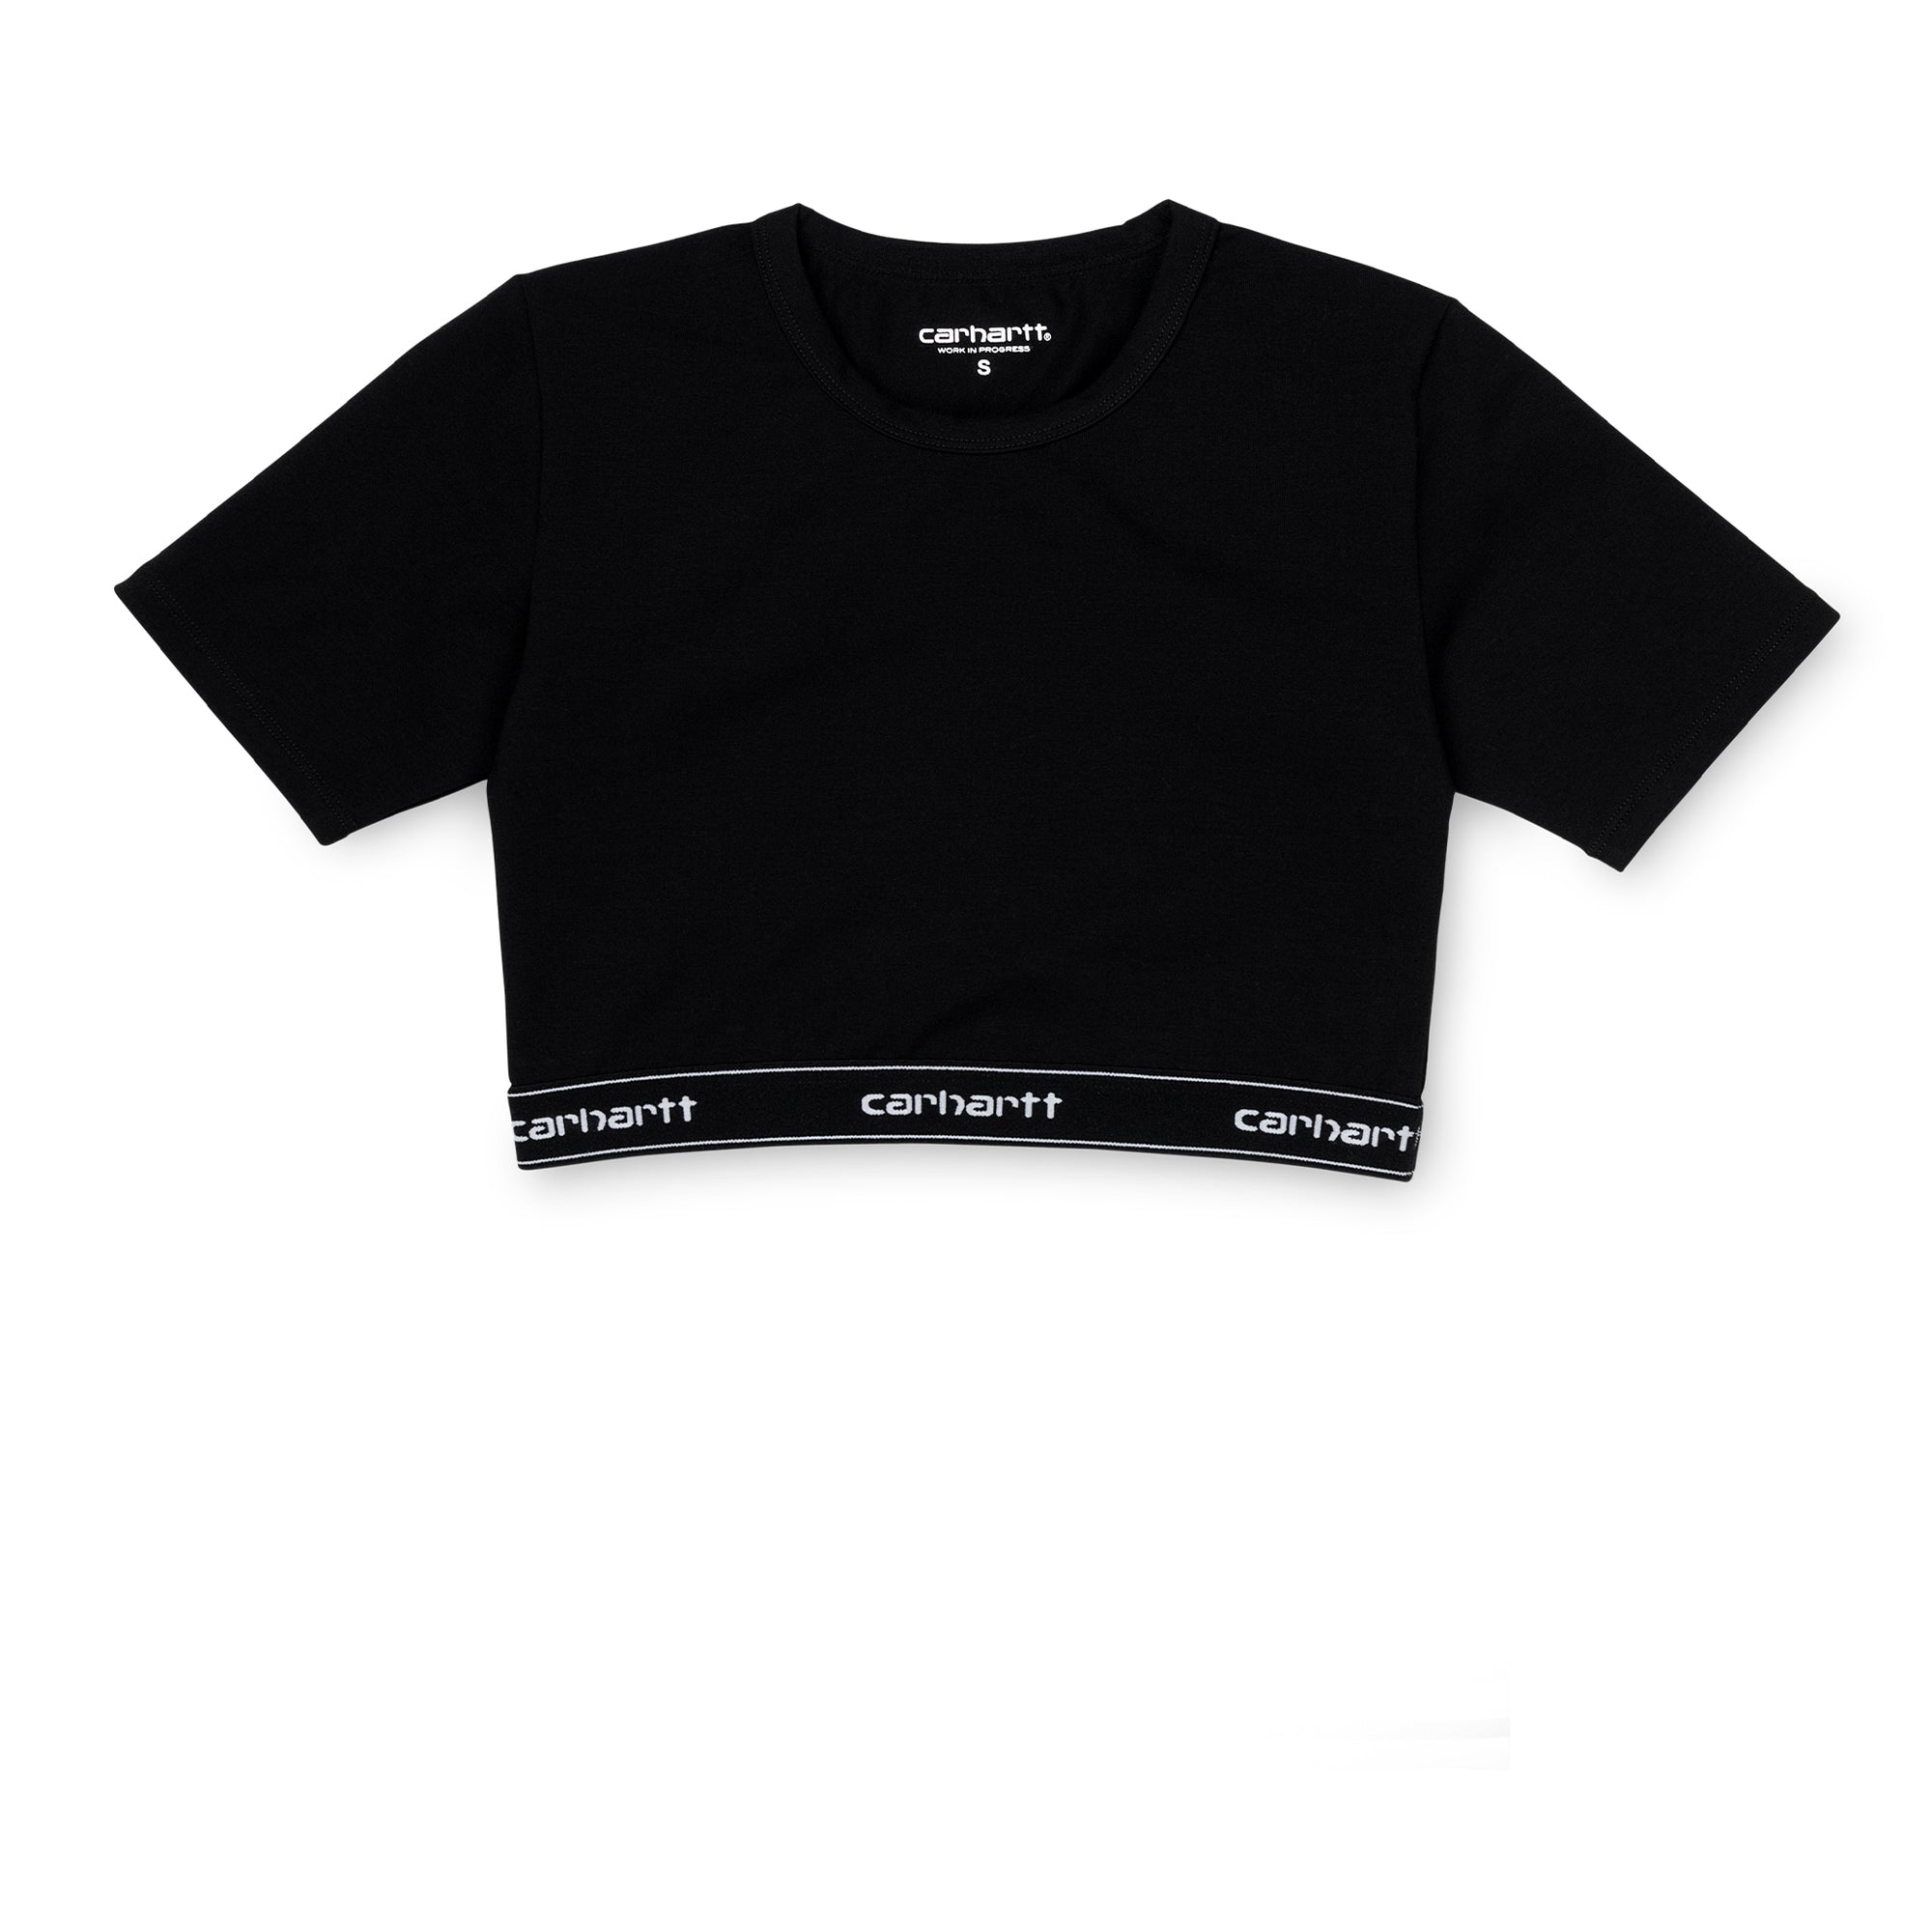 Carhartt WIP Womens Script Crop Top: Black / White - The Union Project